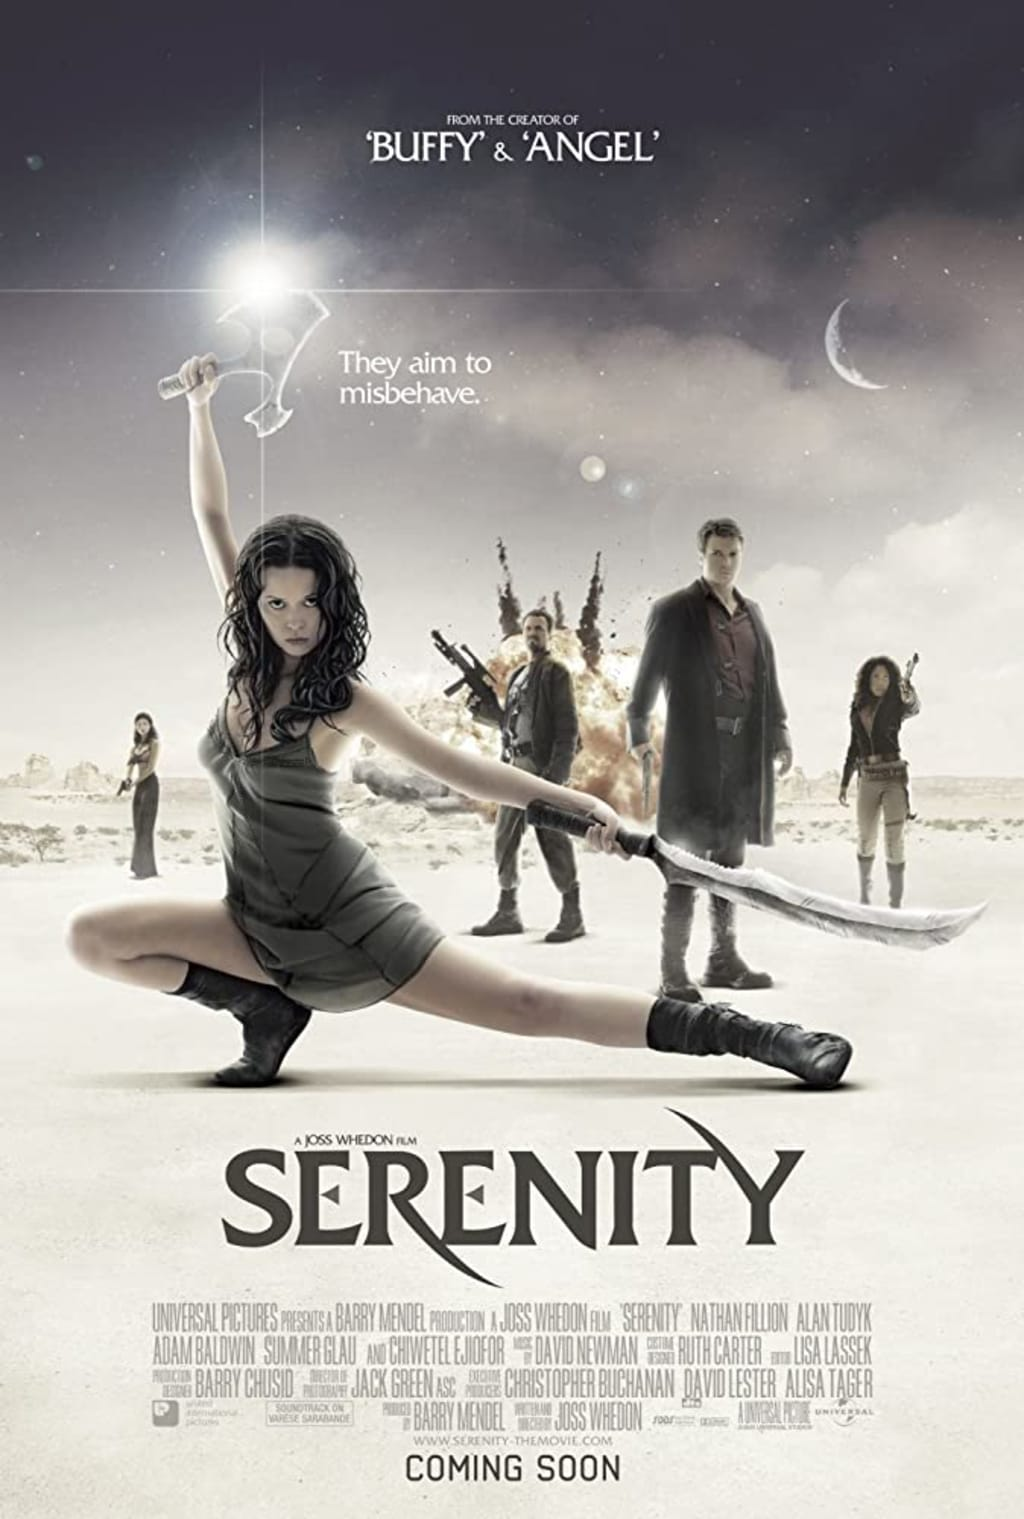 Serenity Picks Up Where Firefly Let Off